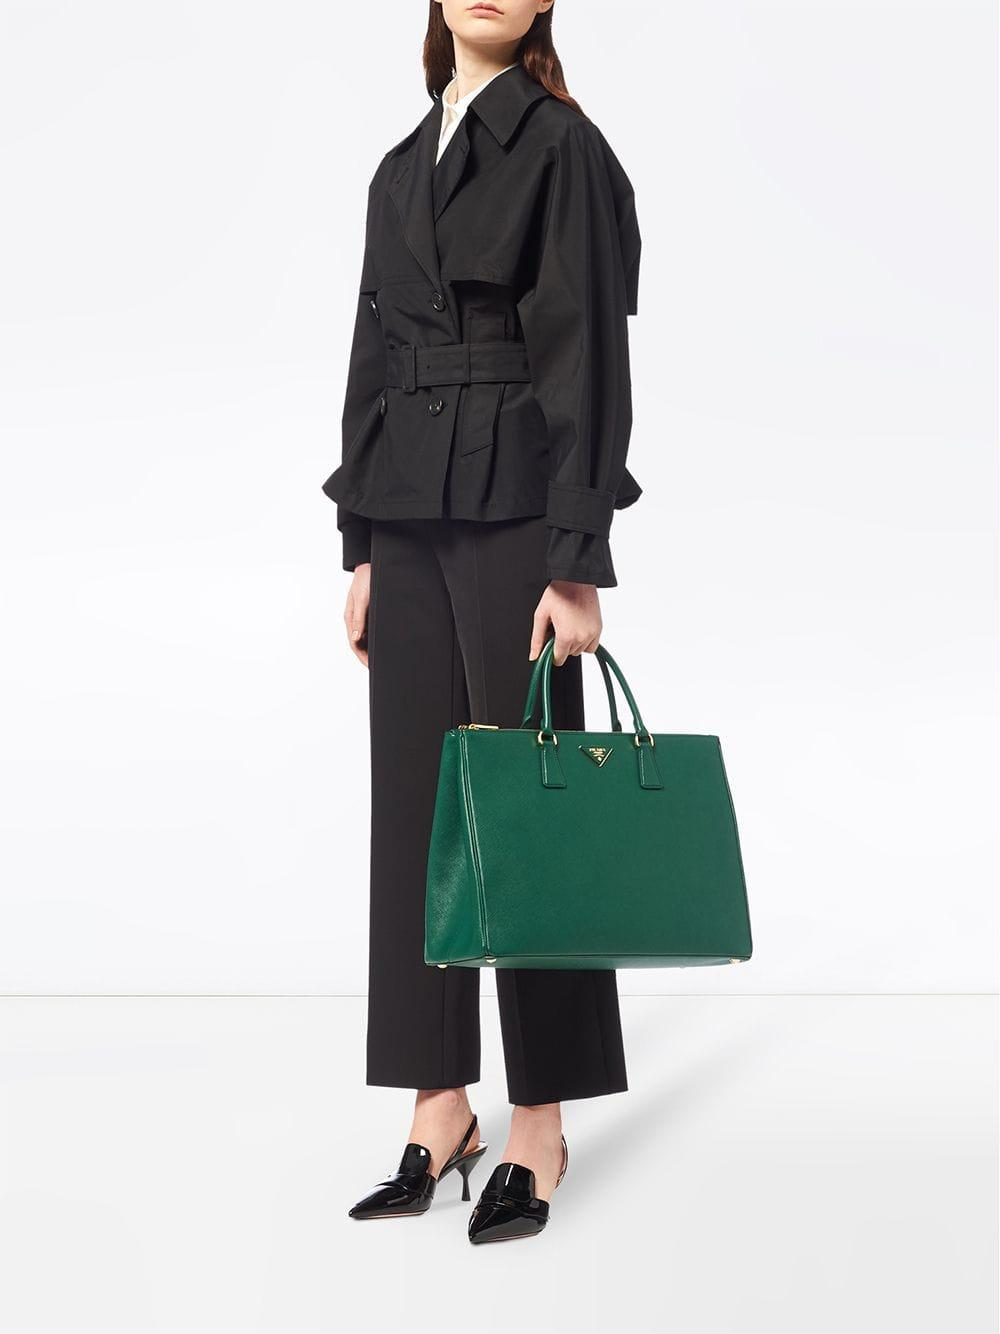 1a3317e2bed1 Prada Galleria Tote Bag in Green - Lyst